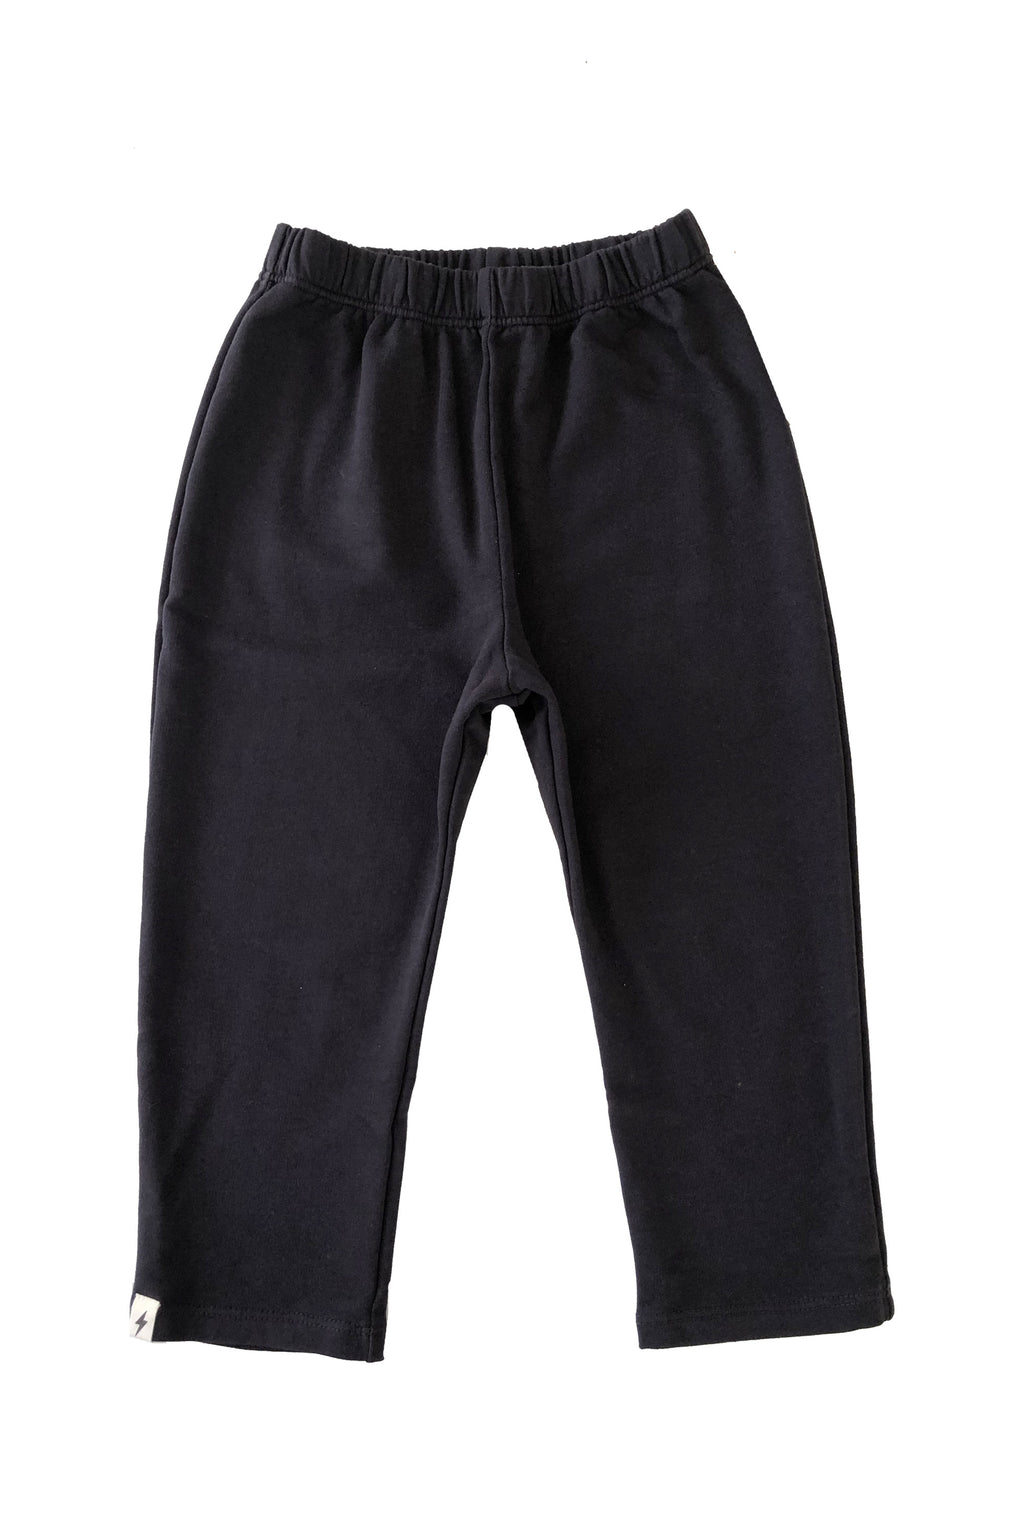 Basic Pant in Black